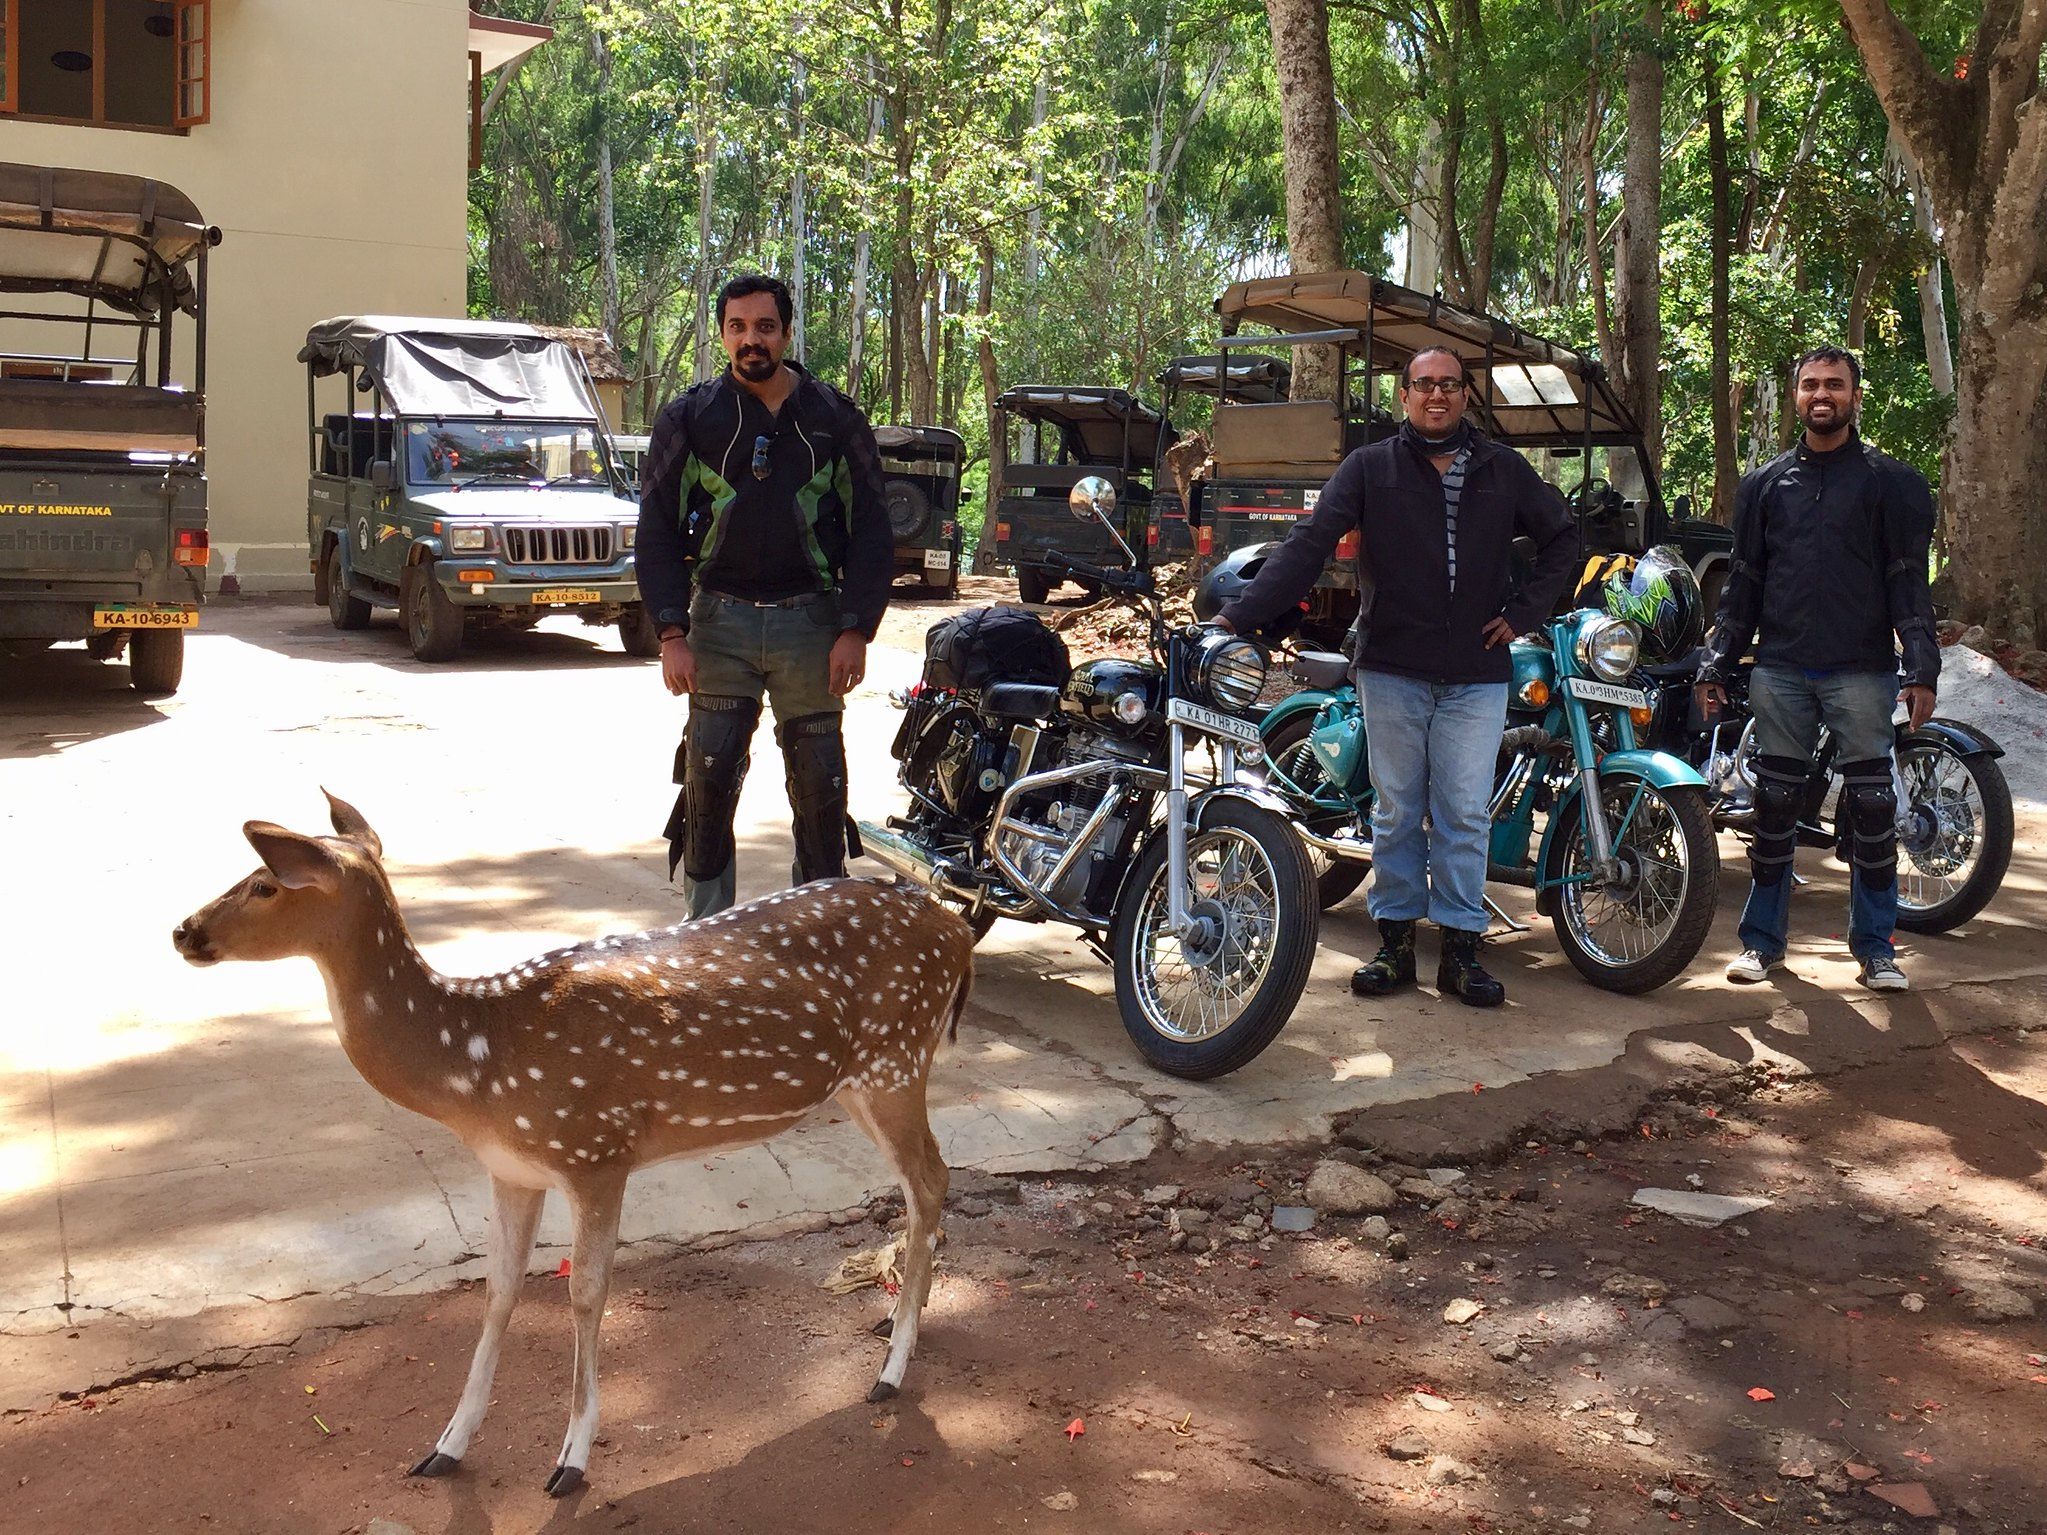 A spotted deer photobombs the mandatory pic